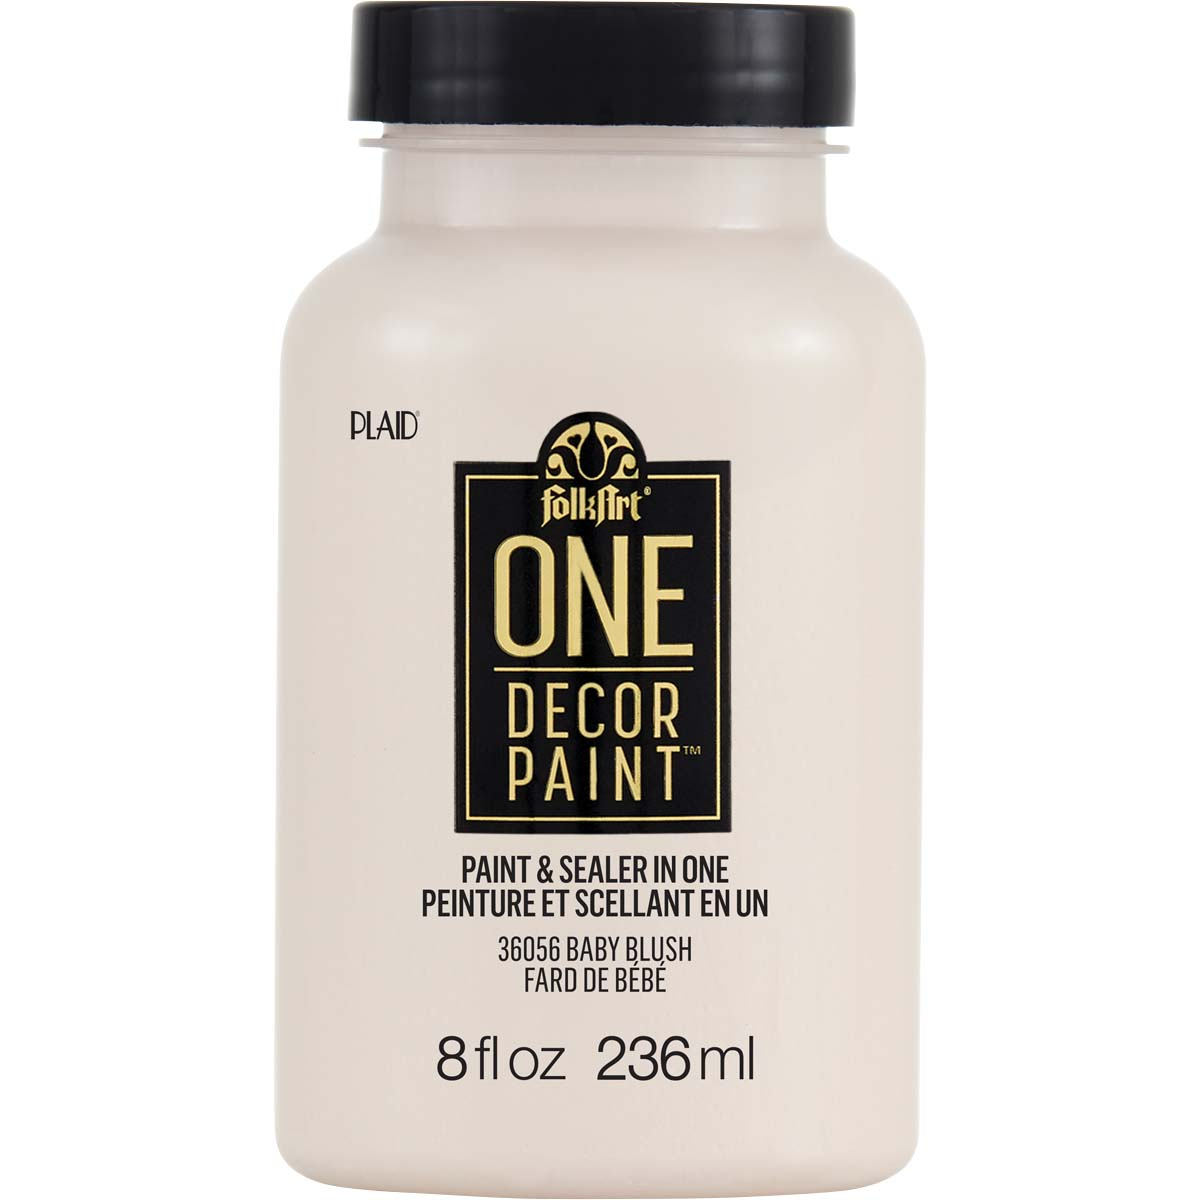 FolkArt ® One Décor Paint™ - Baby Blush, 8 oz. - 36056